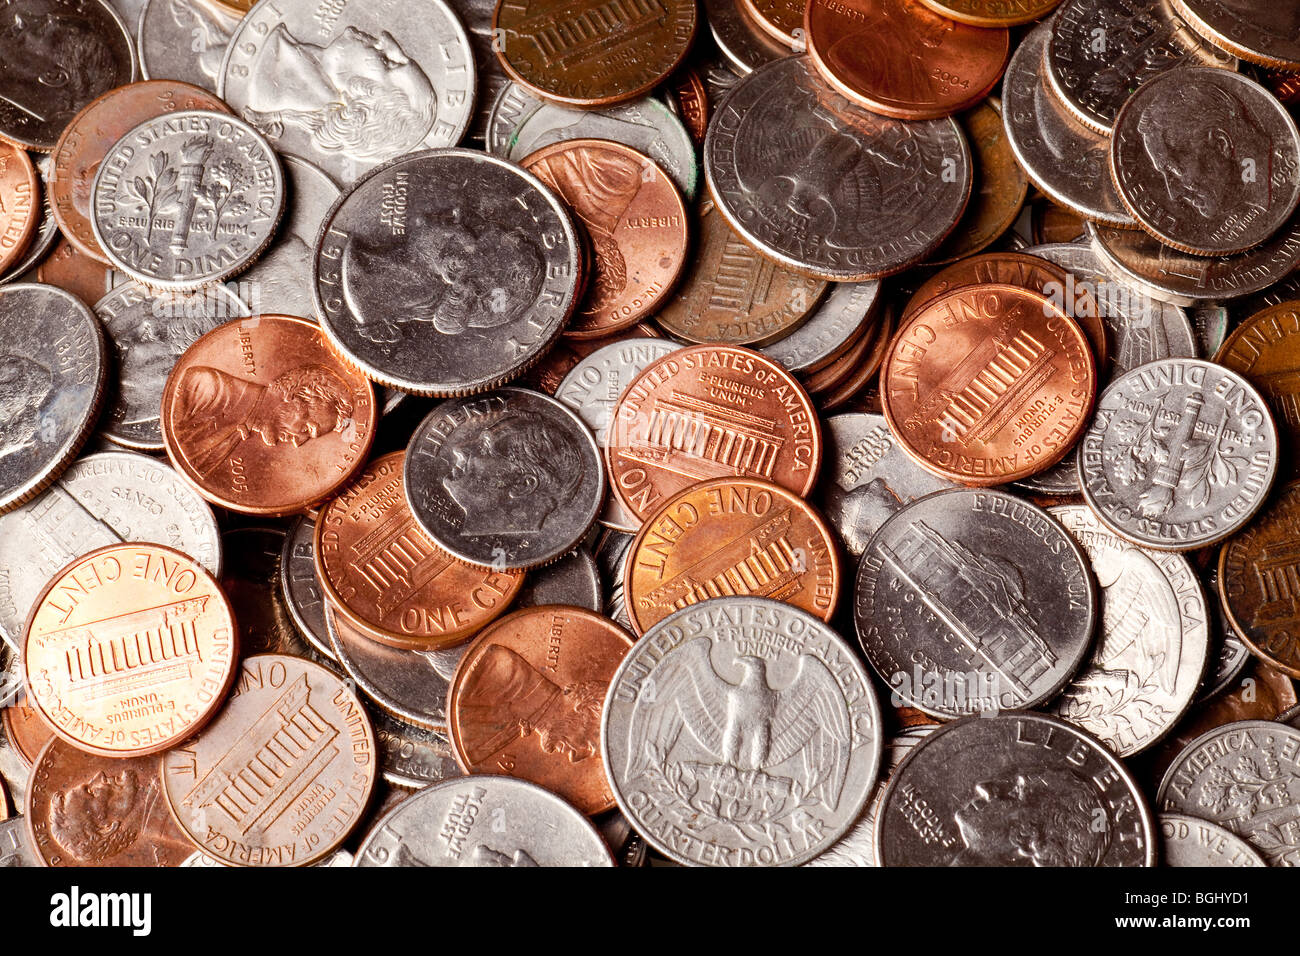 pennies, nickles, dimes, and quarters macro background - Stock Image